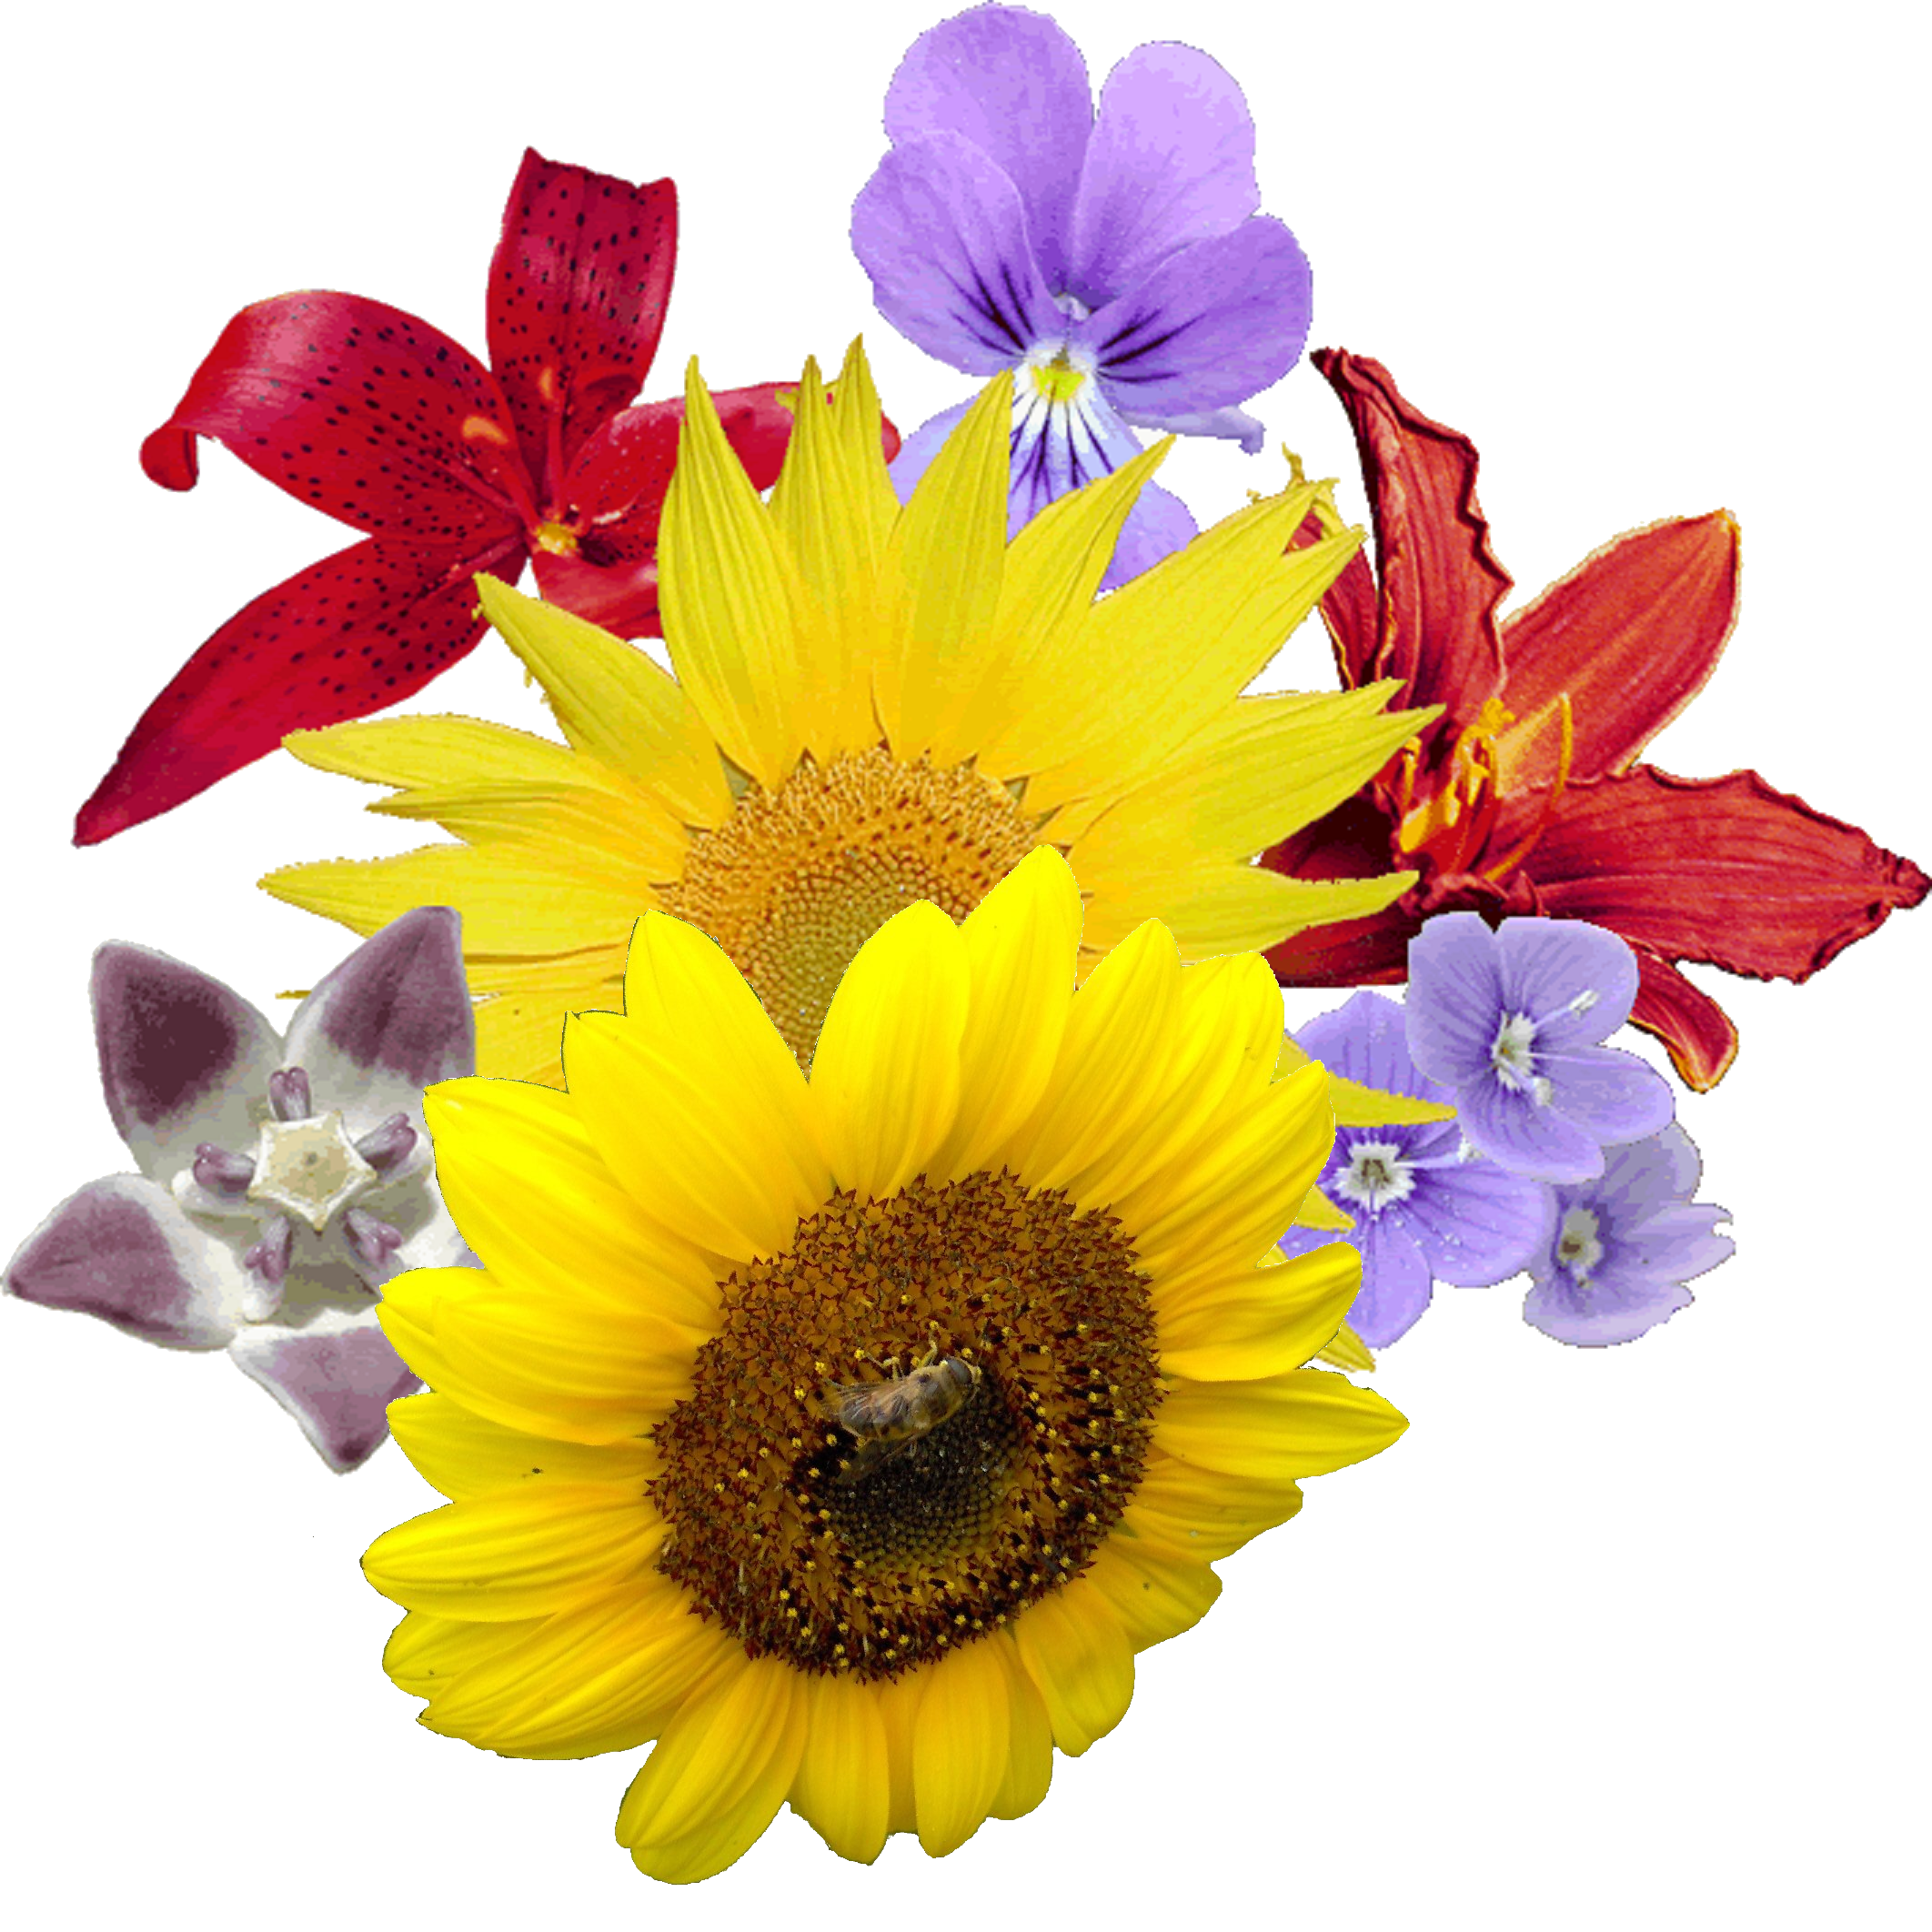 Flower pictures png. Bouquet of flowers images